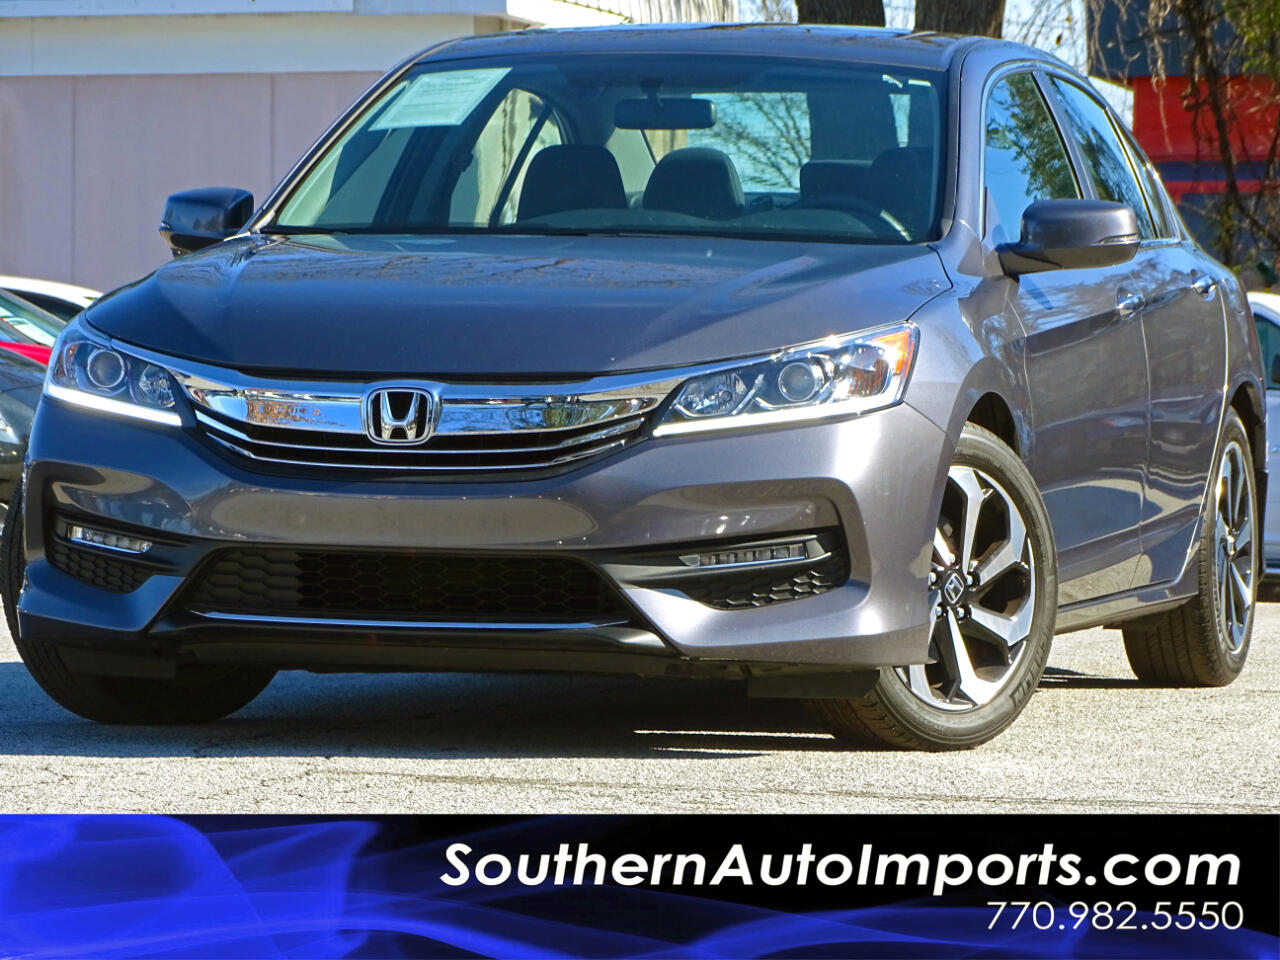 2016 Honda Accord EX w/Blind Spot Camera 1owner